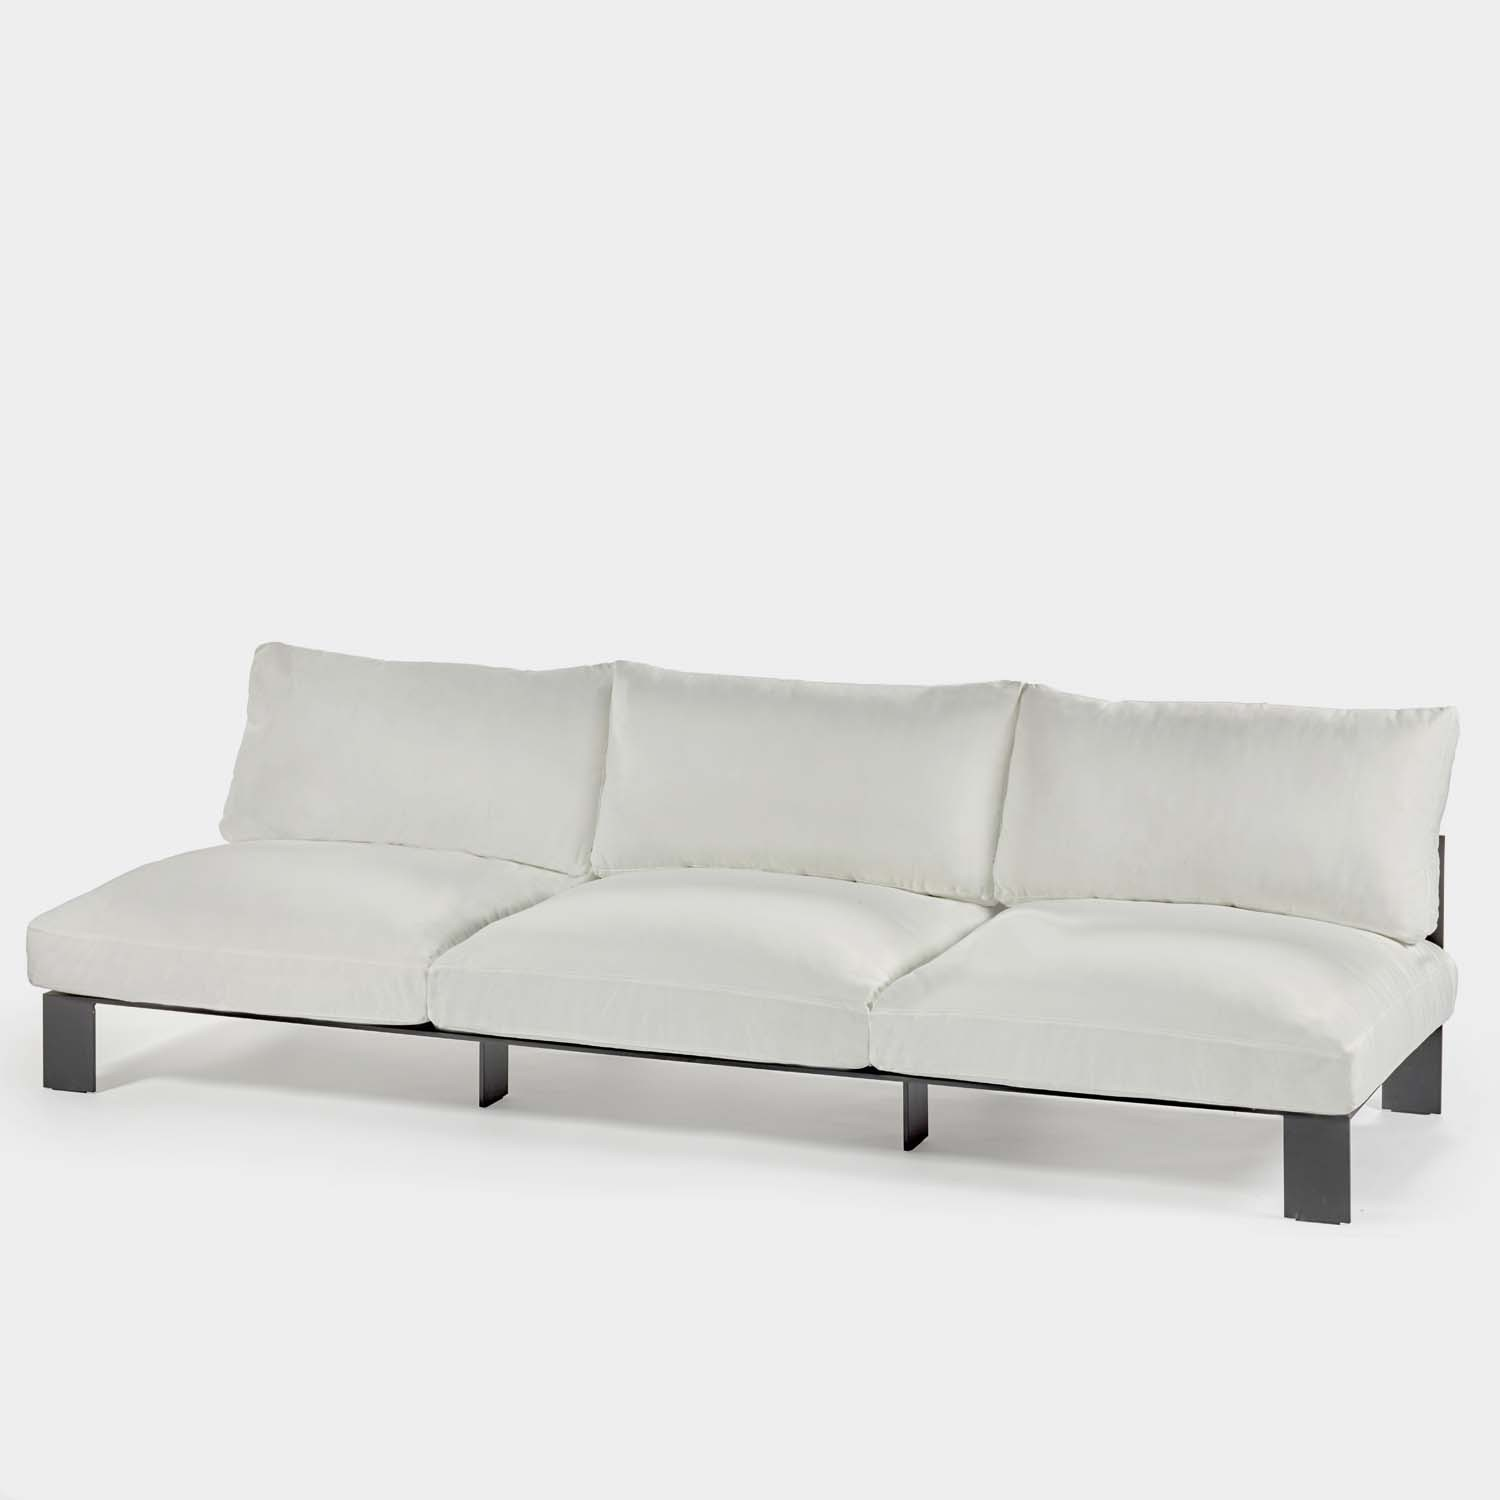 Sofa, Three-seater, Outdoor